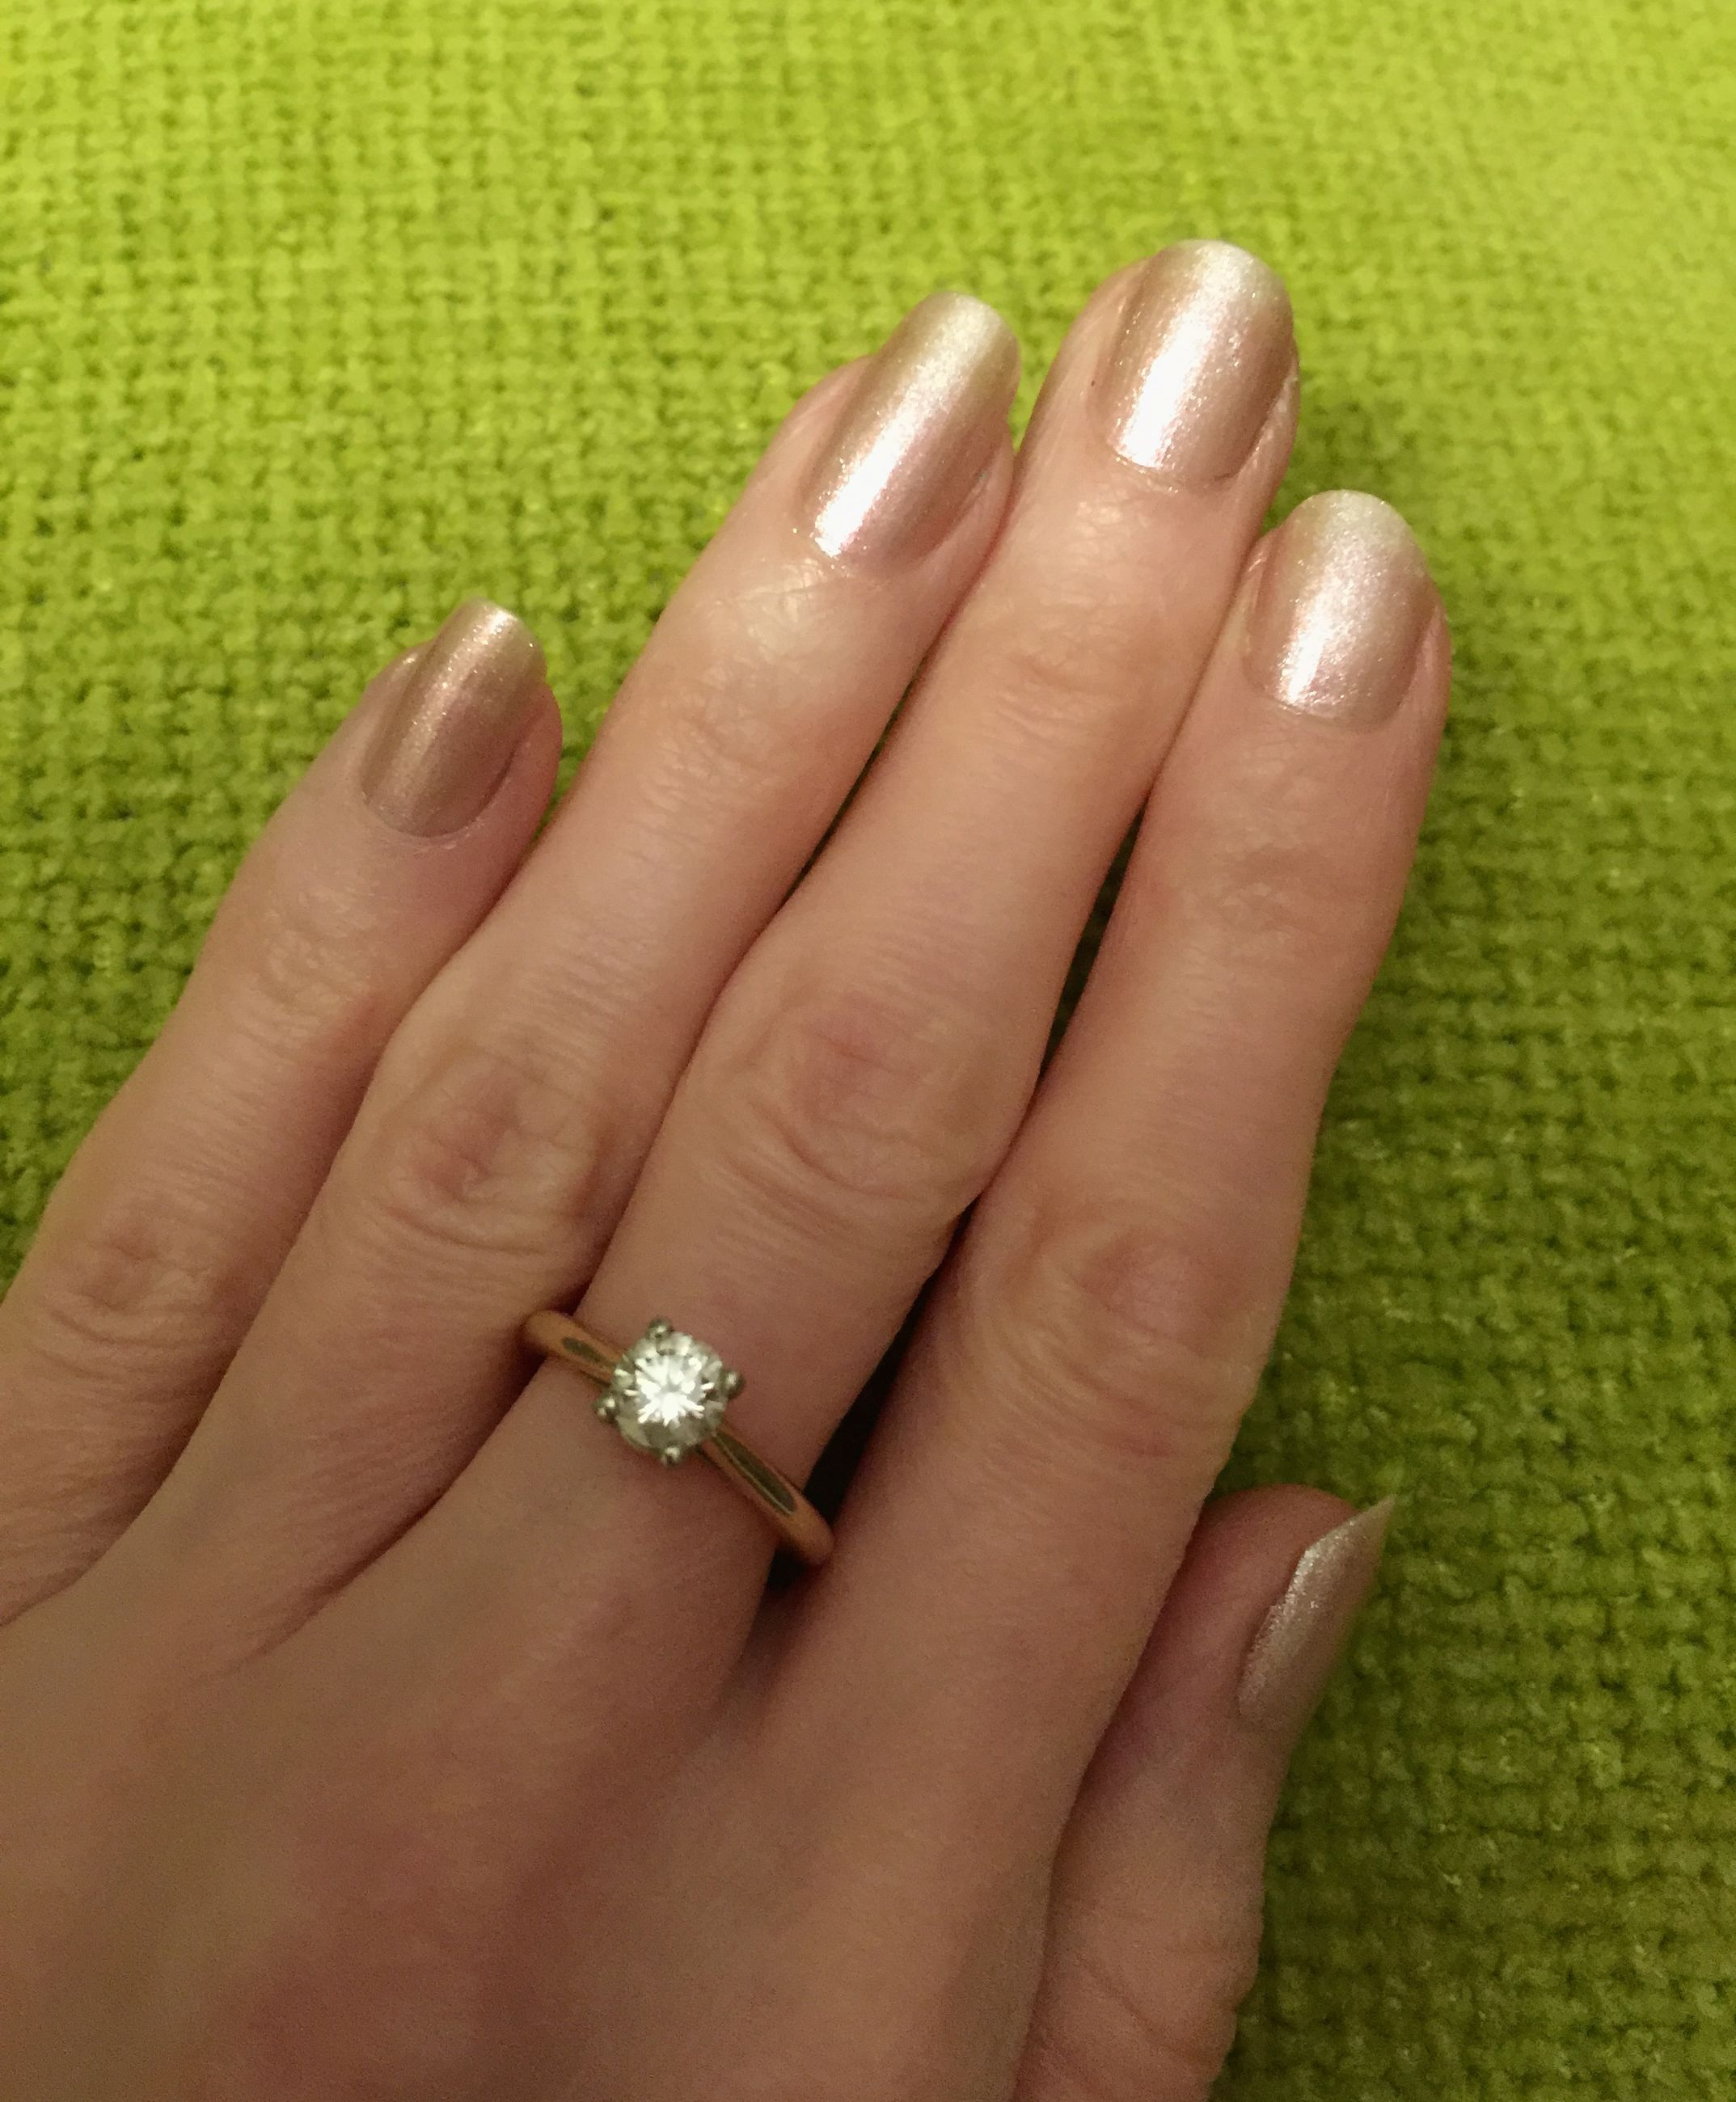 person, part of, human finger, holding, cropped, close-up, palm, ring, personal perspective, unrecognizable person, showing, indoors, focus on foreground, jewelry, lifestyles, nail polish